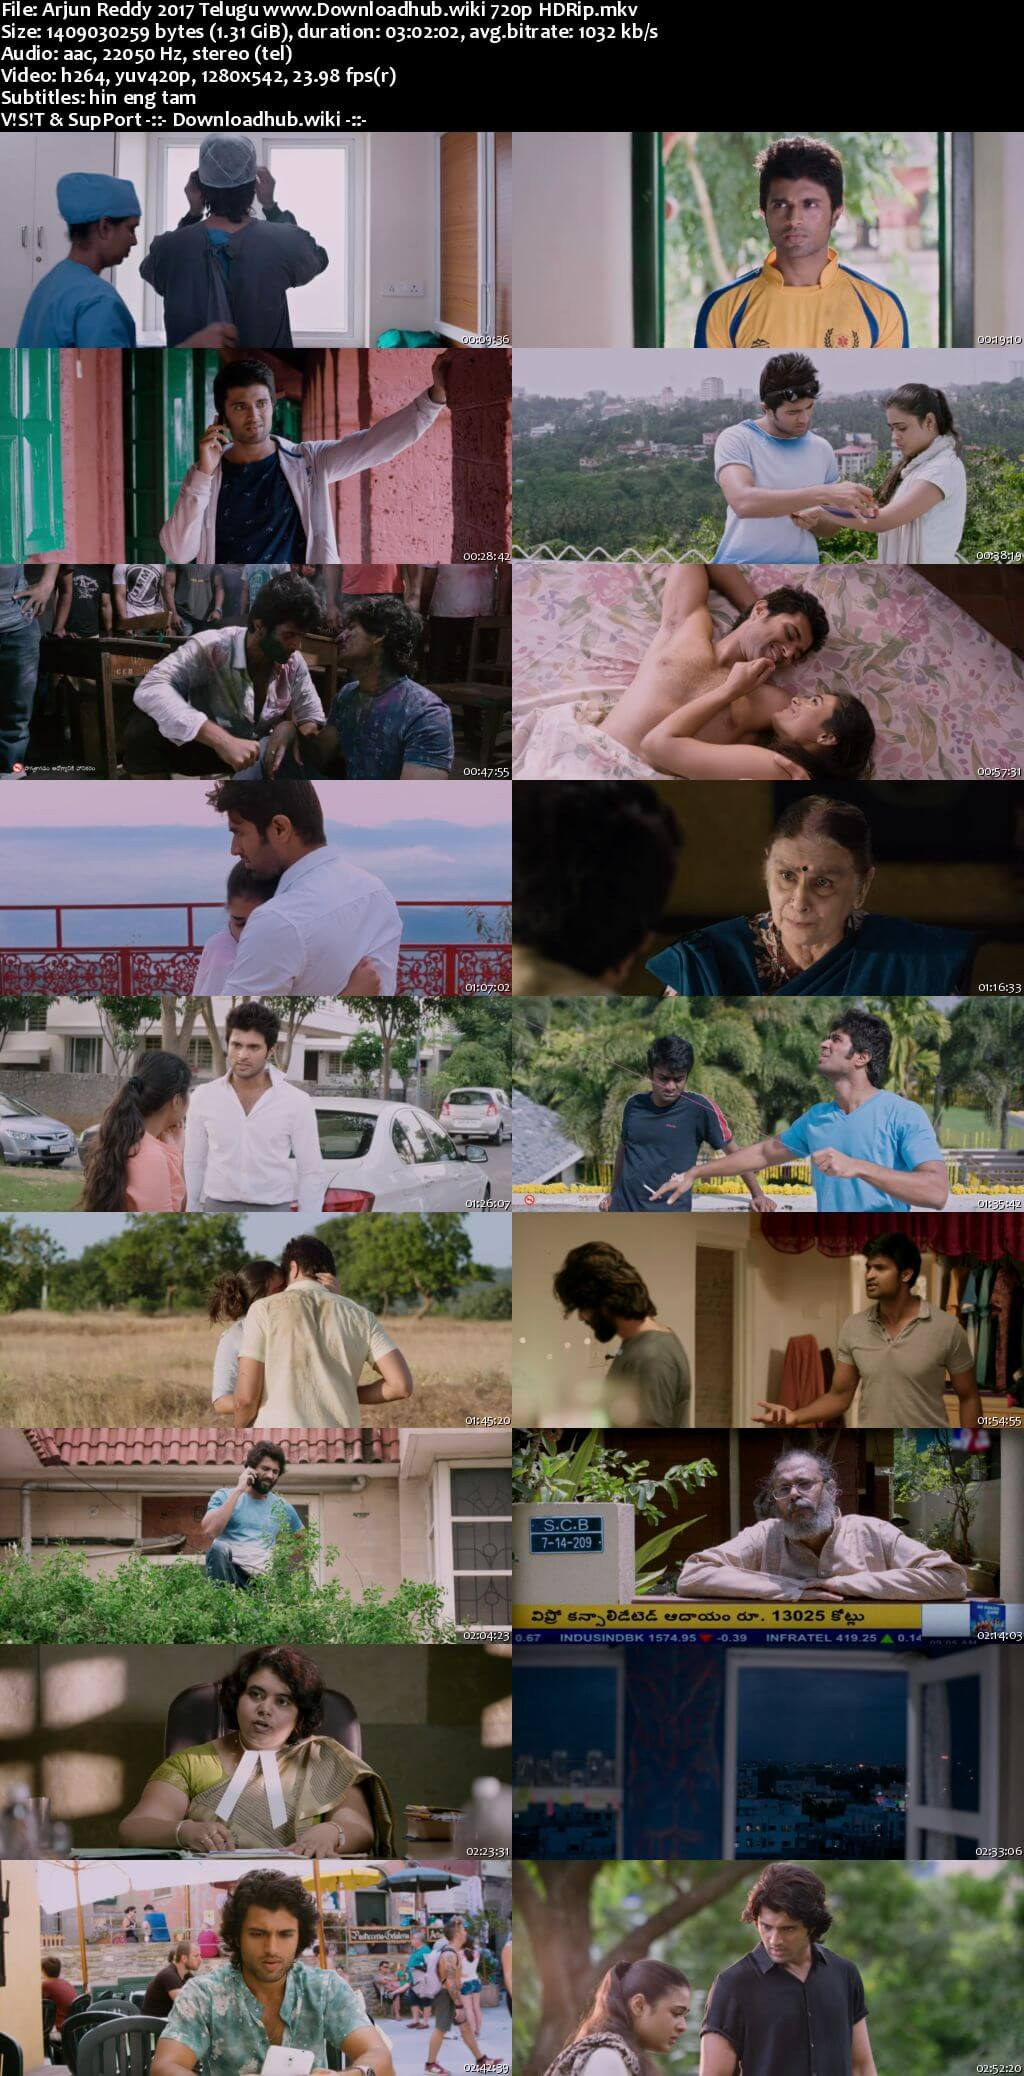 Arjun Reddy 2017 Telugu 720p HDRip MSubs